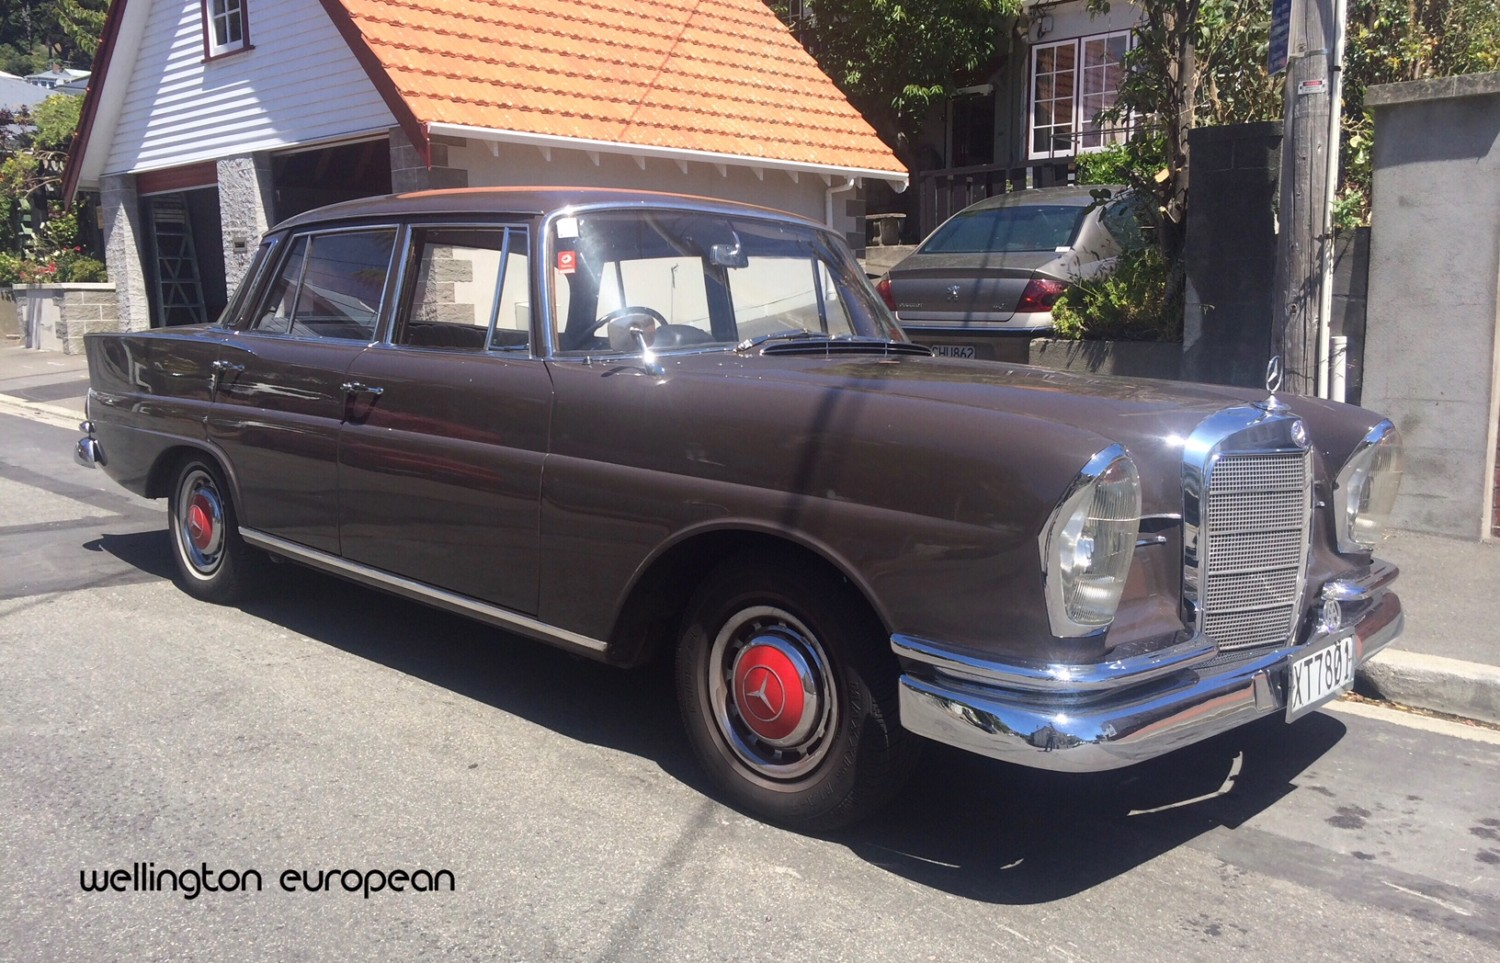 classic 1962 mercedes 220s for sale wellington european. Black Bedroom Furniture Sets. Home Design Ideas